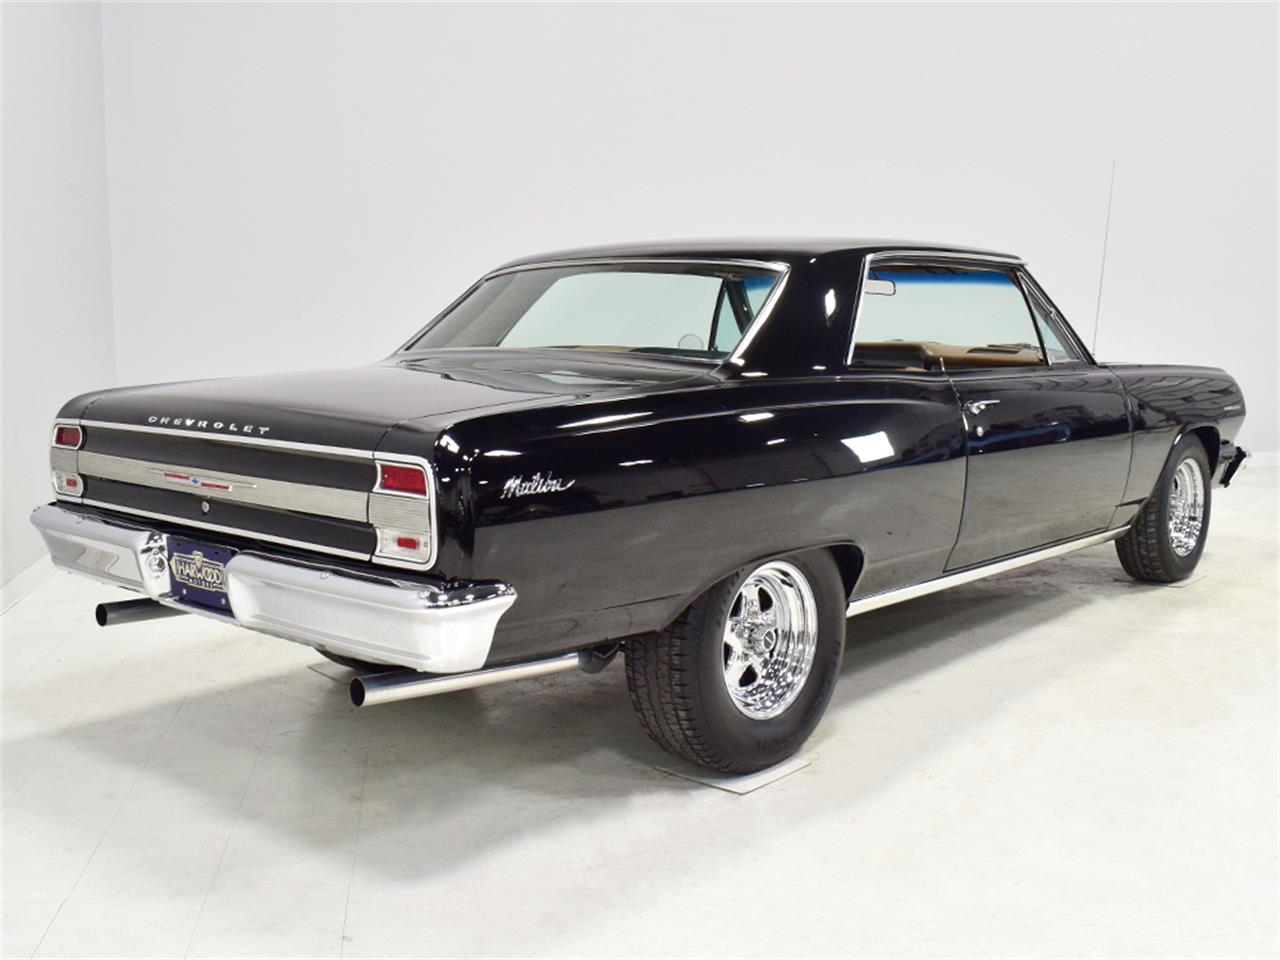 Large Picture of Classic 1964 Malibu located in Ohio Offered by Harwood Motors, LTD. - PK4B